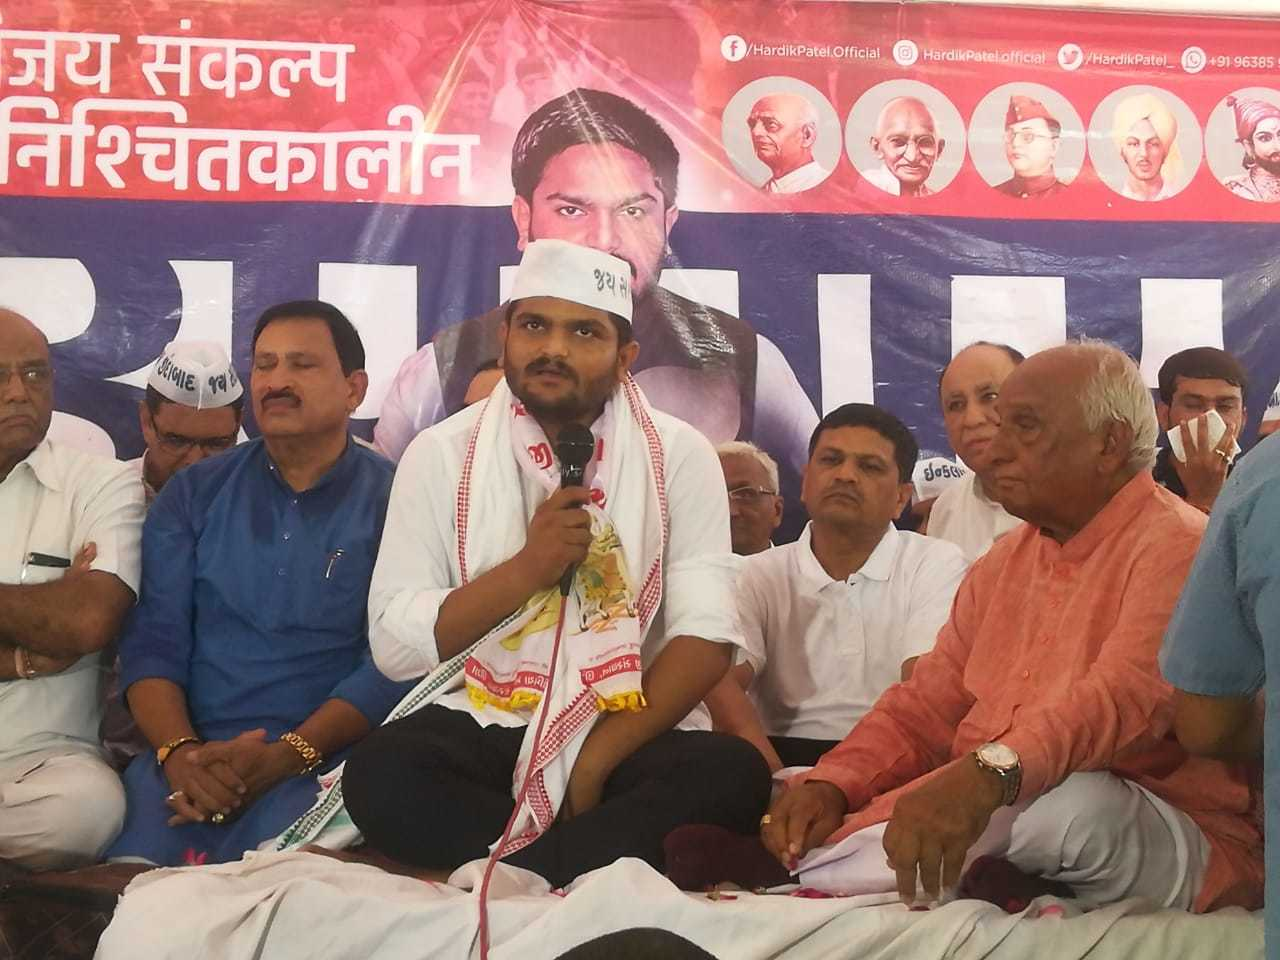 Hardik claimed that he ended his fast after 19 days to keep intact the dignity of community leaders.